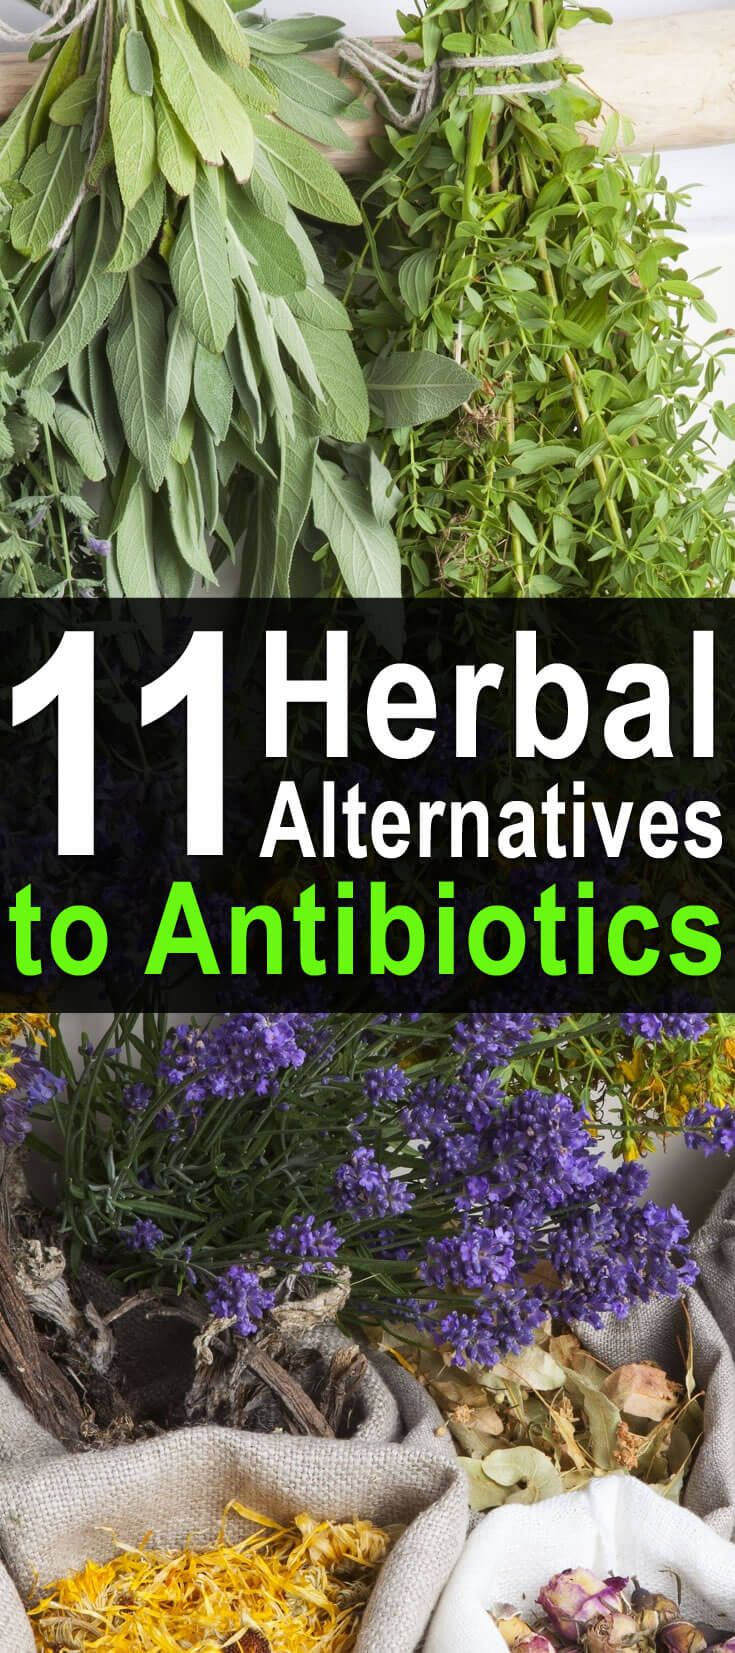 Oftentimes, the world's best medications are not the ones developed in labs, but the ones made by Mother Nature. If you would like to avoid the harmful side-effects of antibiotics or are concerned about a day when these antibiotics aren't available, consider trying these herbal alternatives.